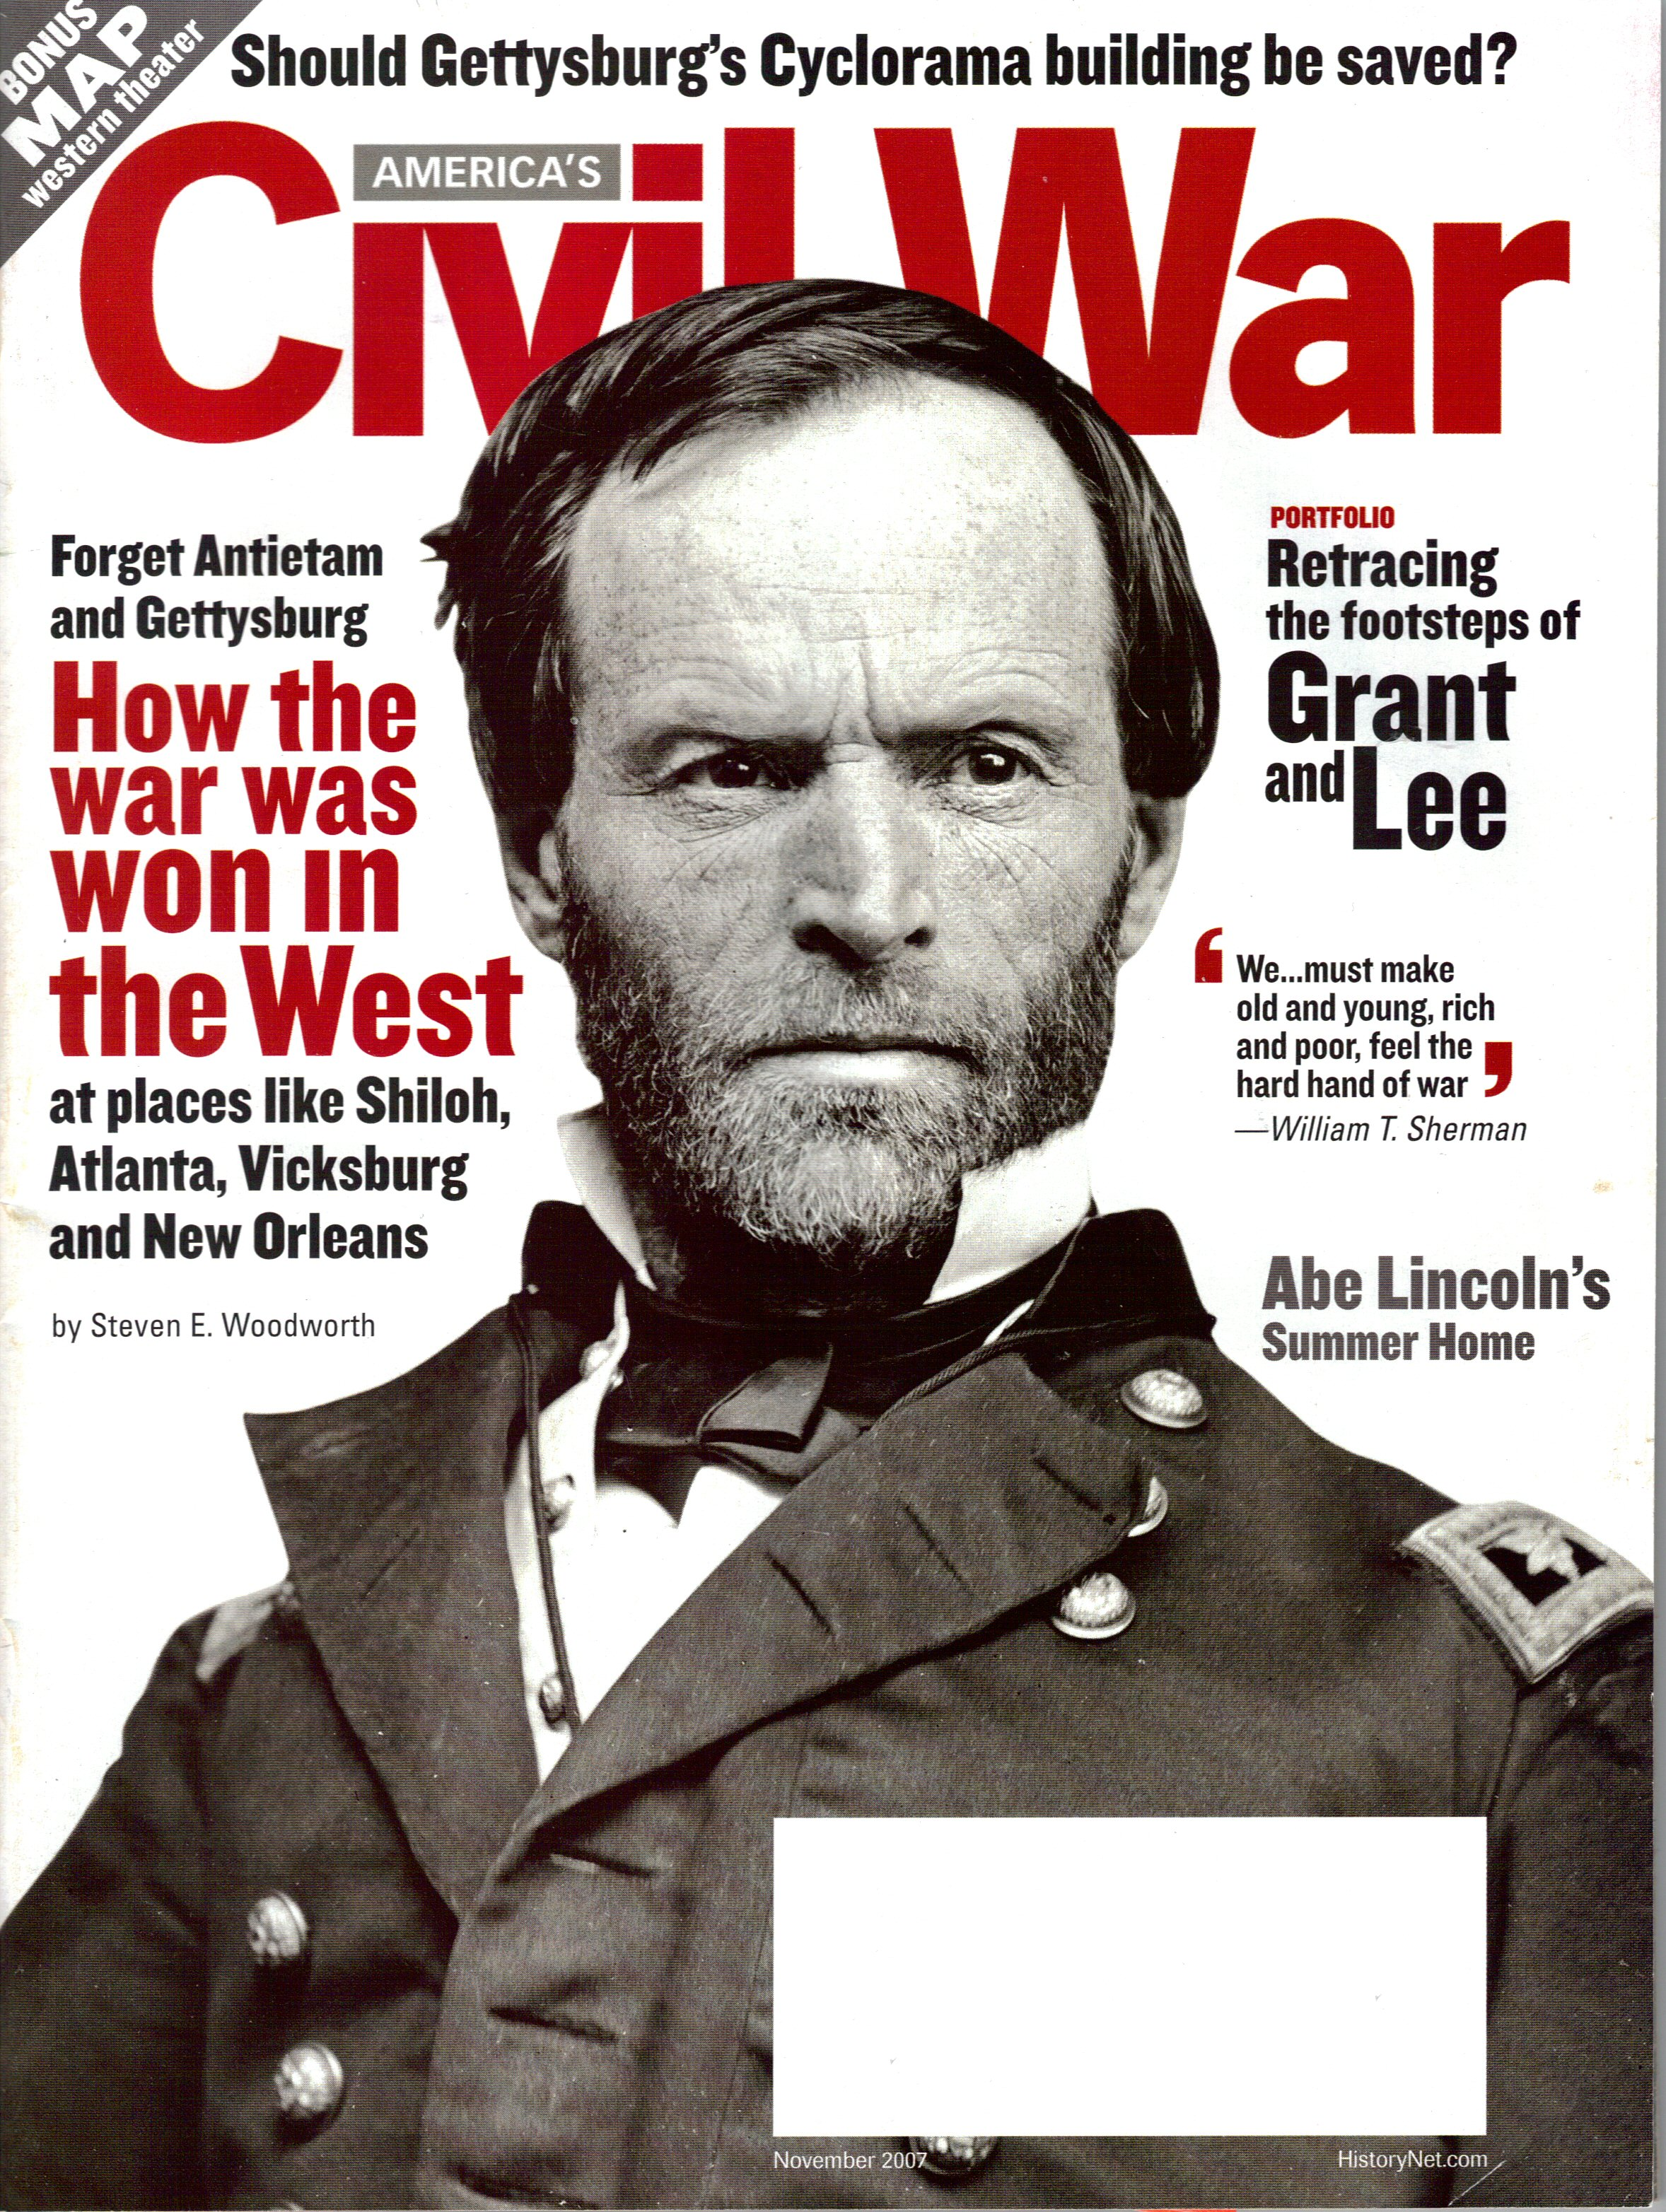 Americas Civil War, Volume 20, Number 5 (November 2007)